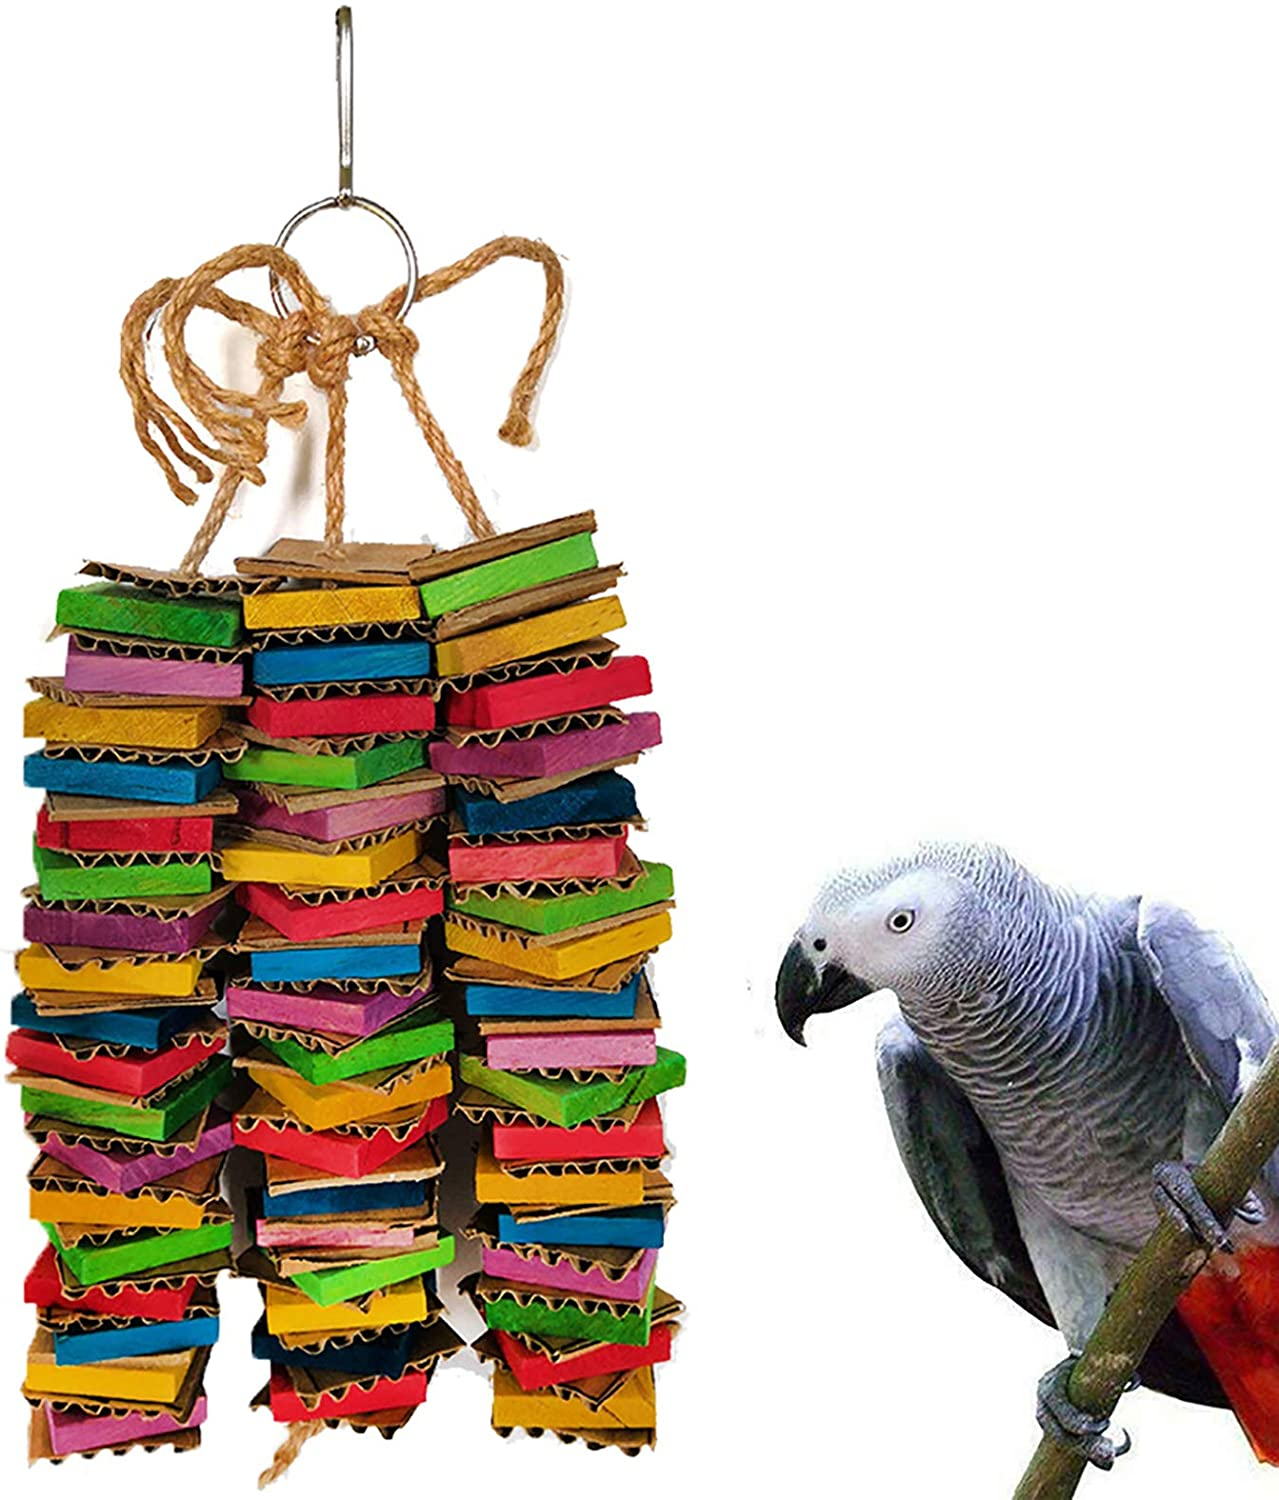 Parrot Toys for Medium Birds, Cardboard Bird Toys African Grey Parrot Toys, Natural Wooden Bird Cage Chewing Toy with Clip for Small Medium Parrots and Birds Cockatiel Conure